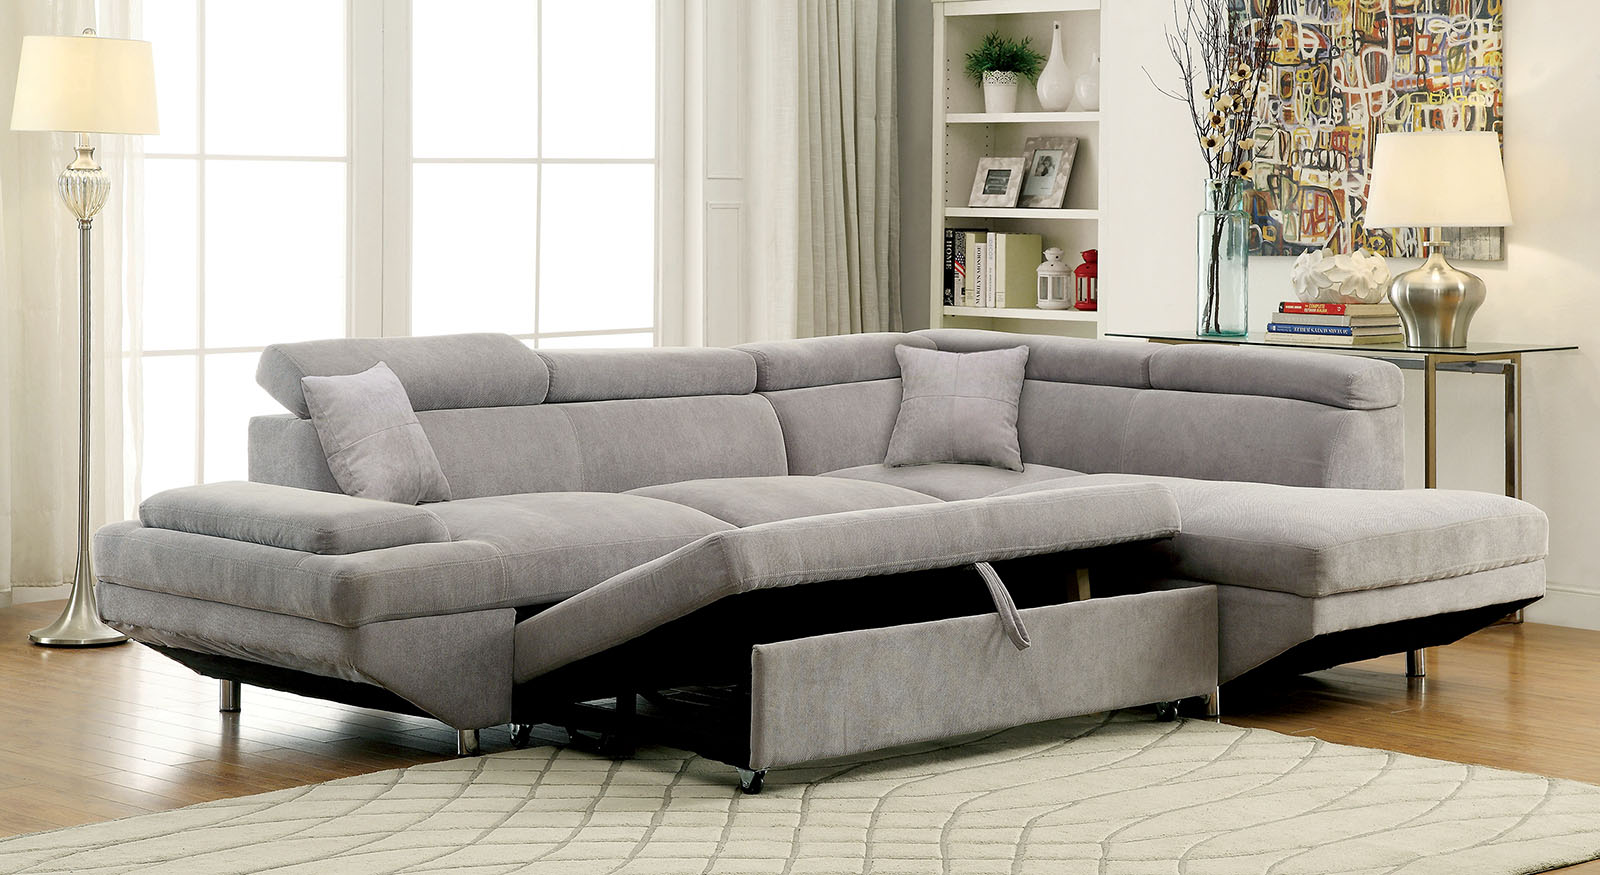 foreman gy gray sleeper sectional with chaise. furniture of america gy gray modern sleeper sectional sofa